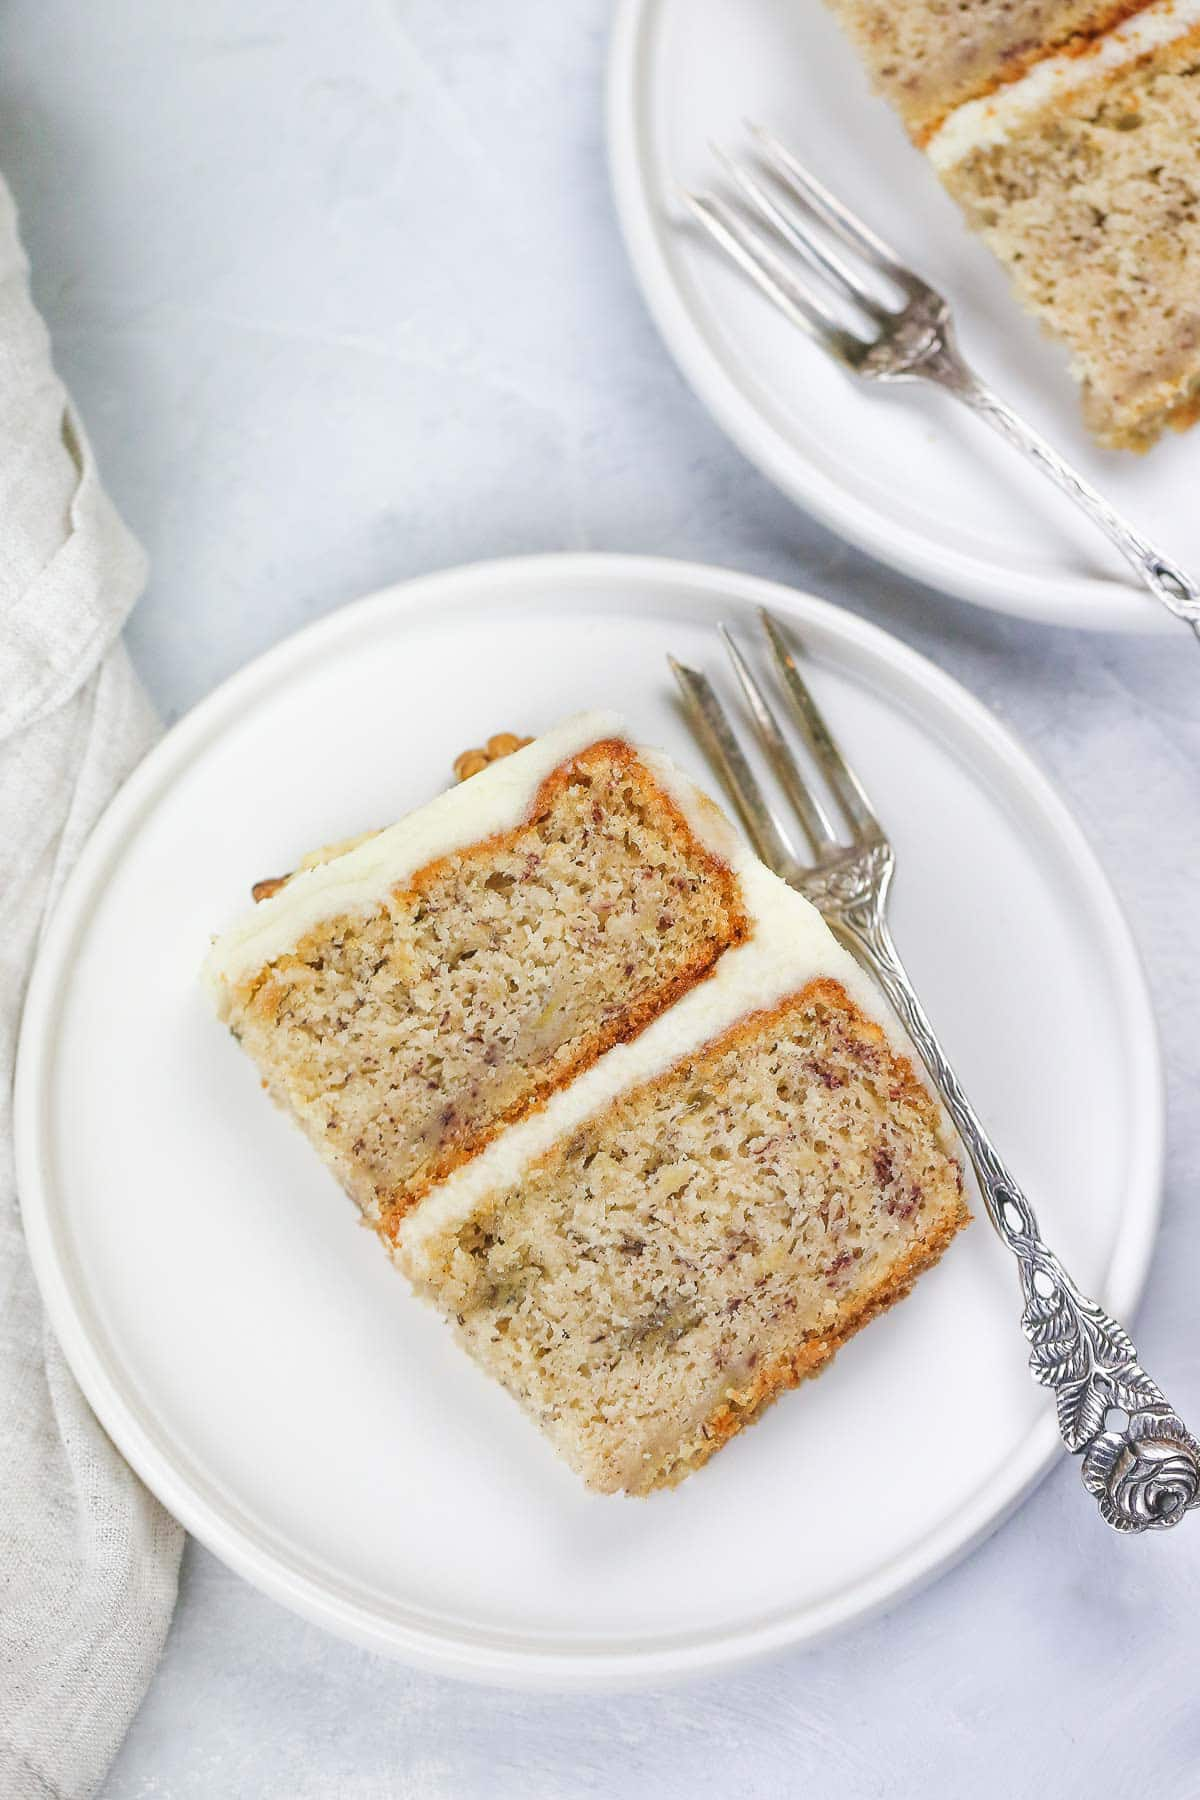 A slice of frosted banana cake on a white plate with a cake fork